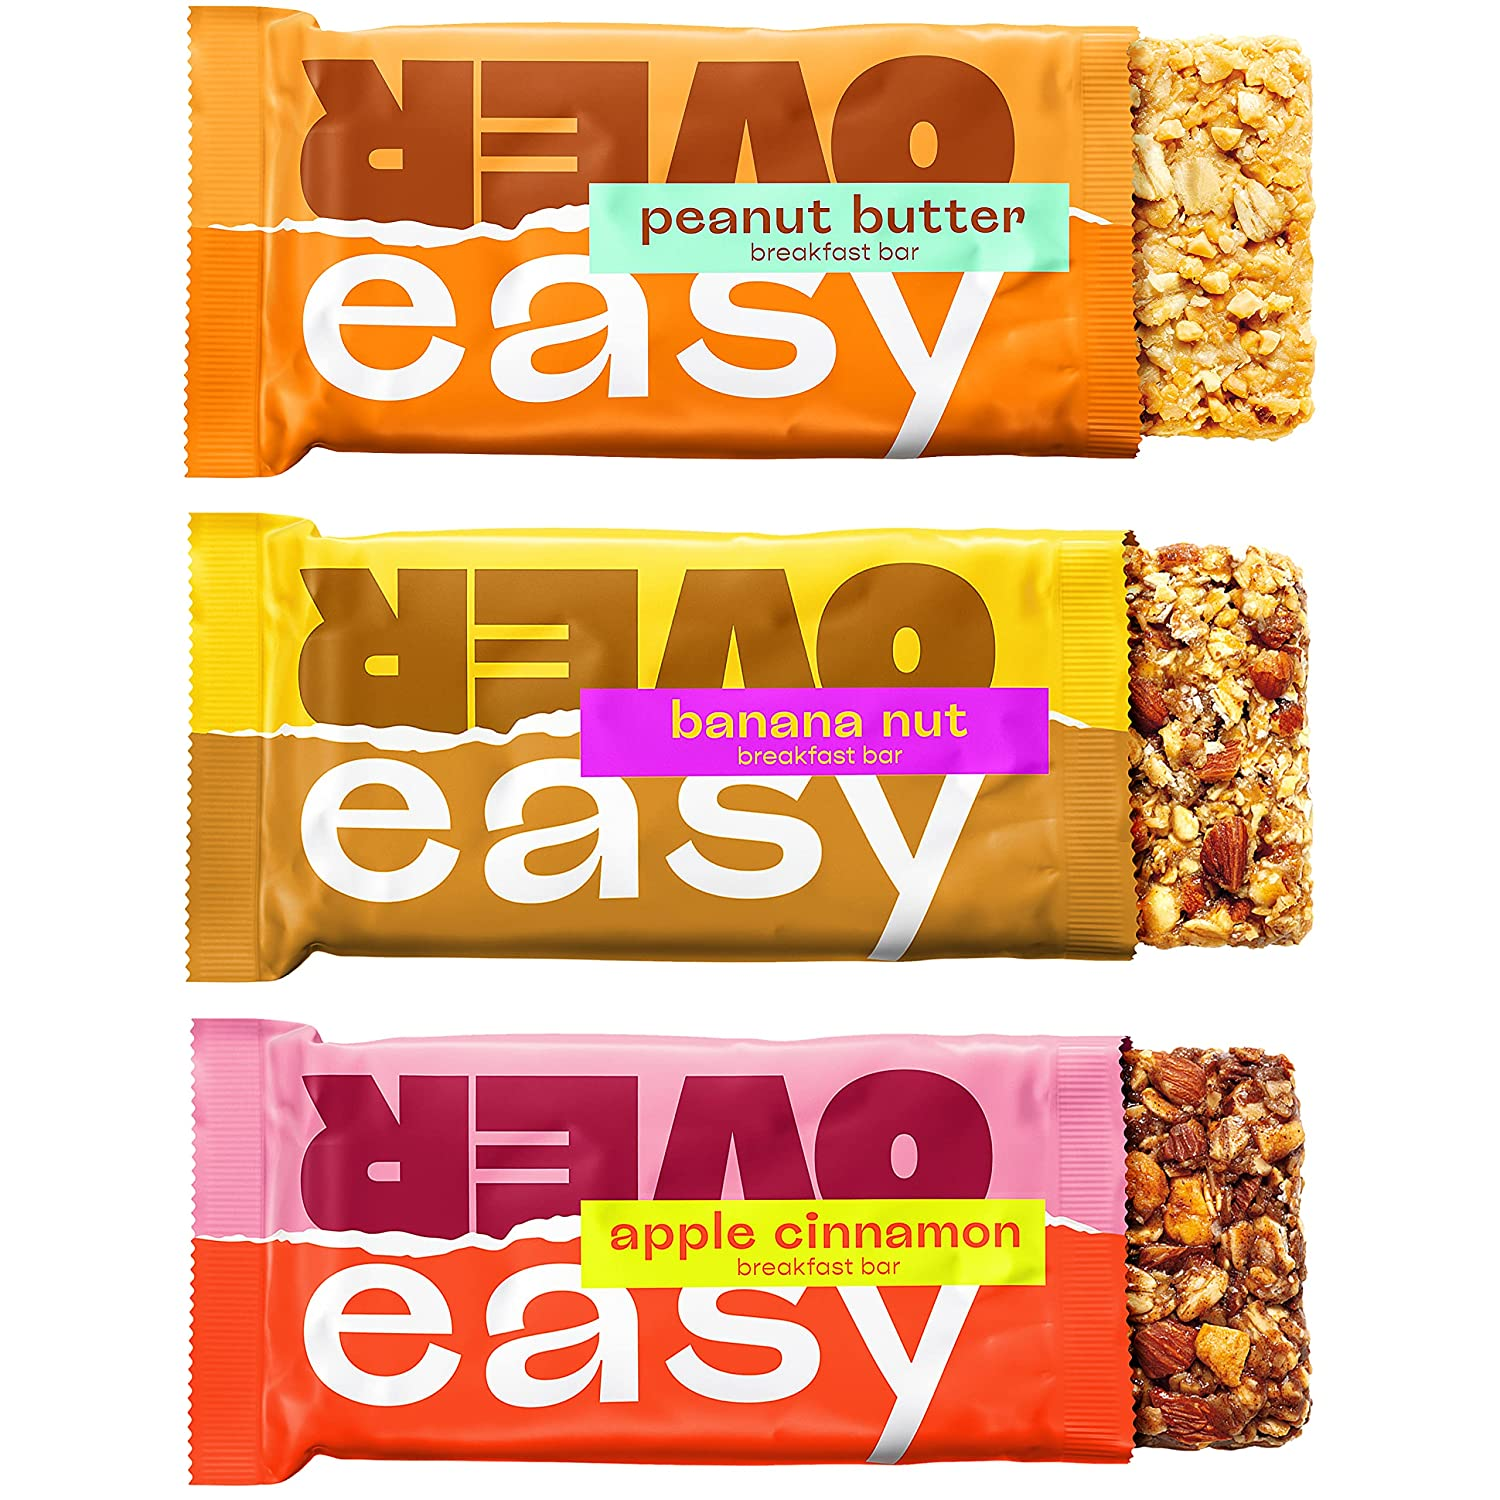 OVER EASY Breakfast Bars | All Natural, Clean Ingredient, 9-10g Protein & 6-7g Fiber Breakfast Bars | Gluten Free, Dairy Free (Trial Pack (Variety), 3 Count (Pack of 1))